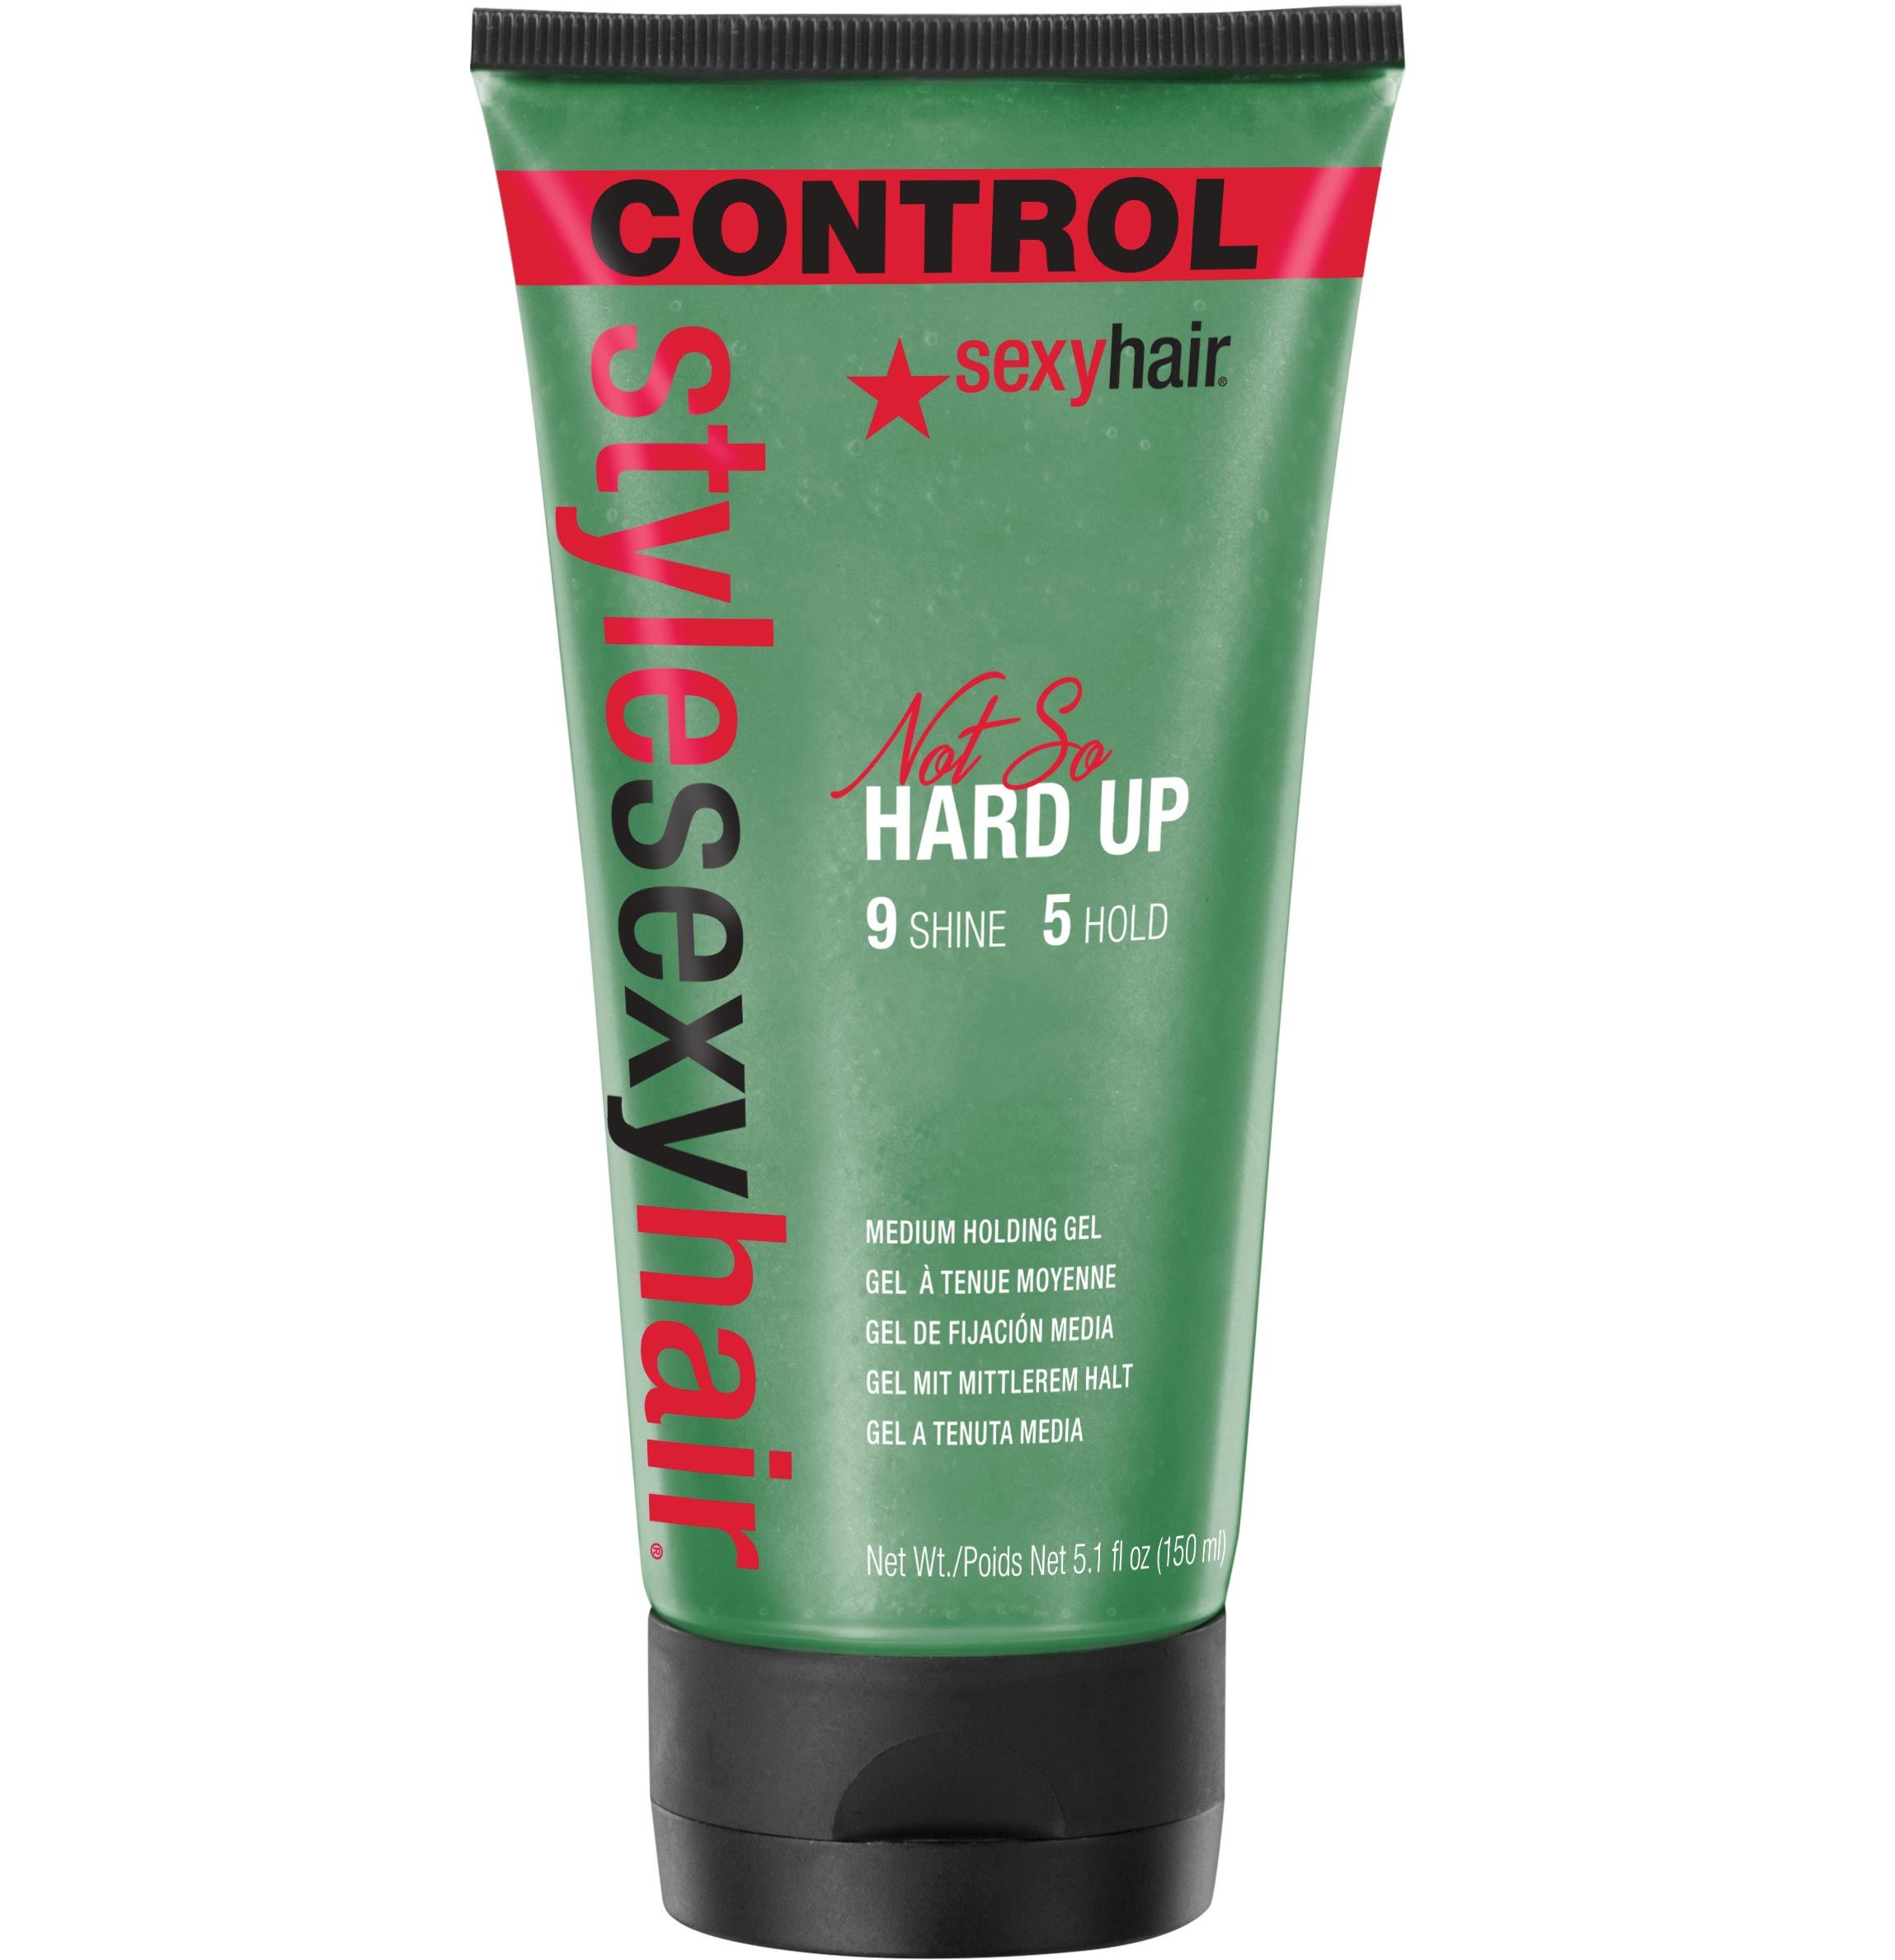 Style Sexy Hair's Not So Hard Up Gel